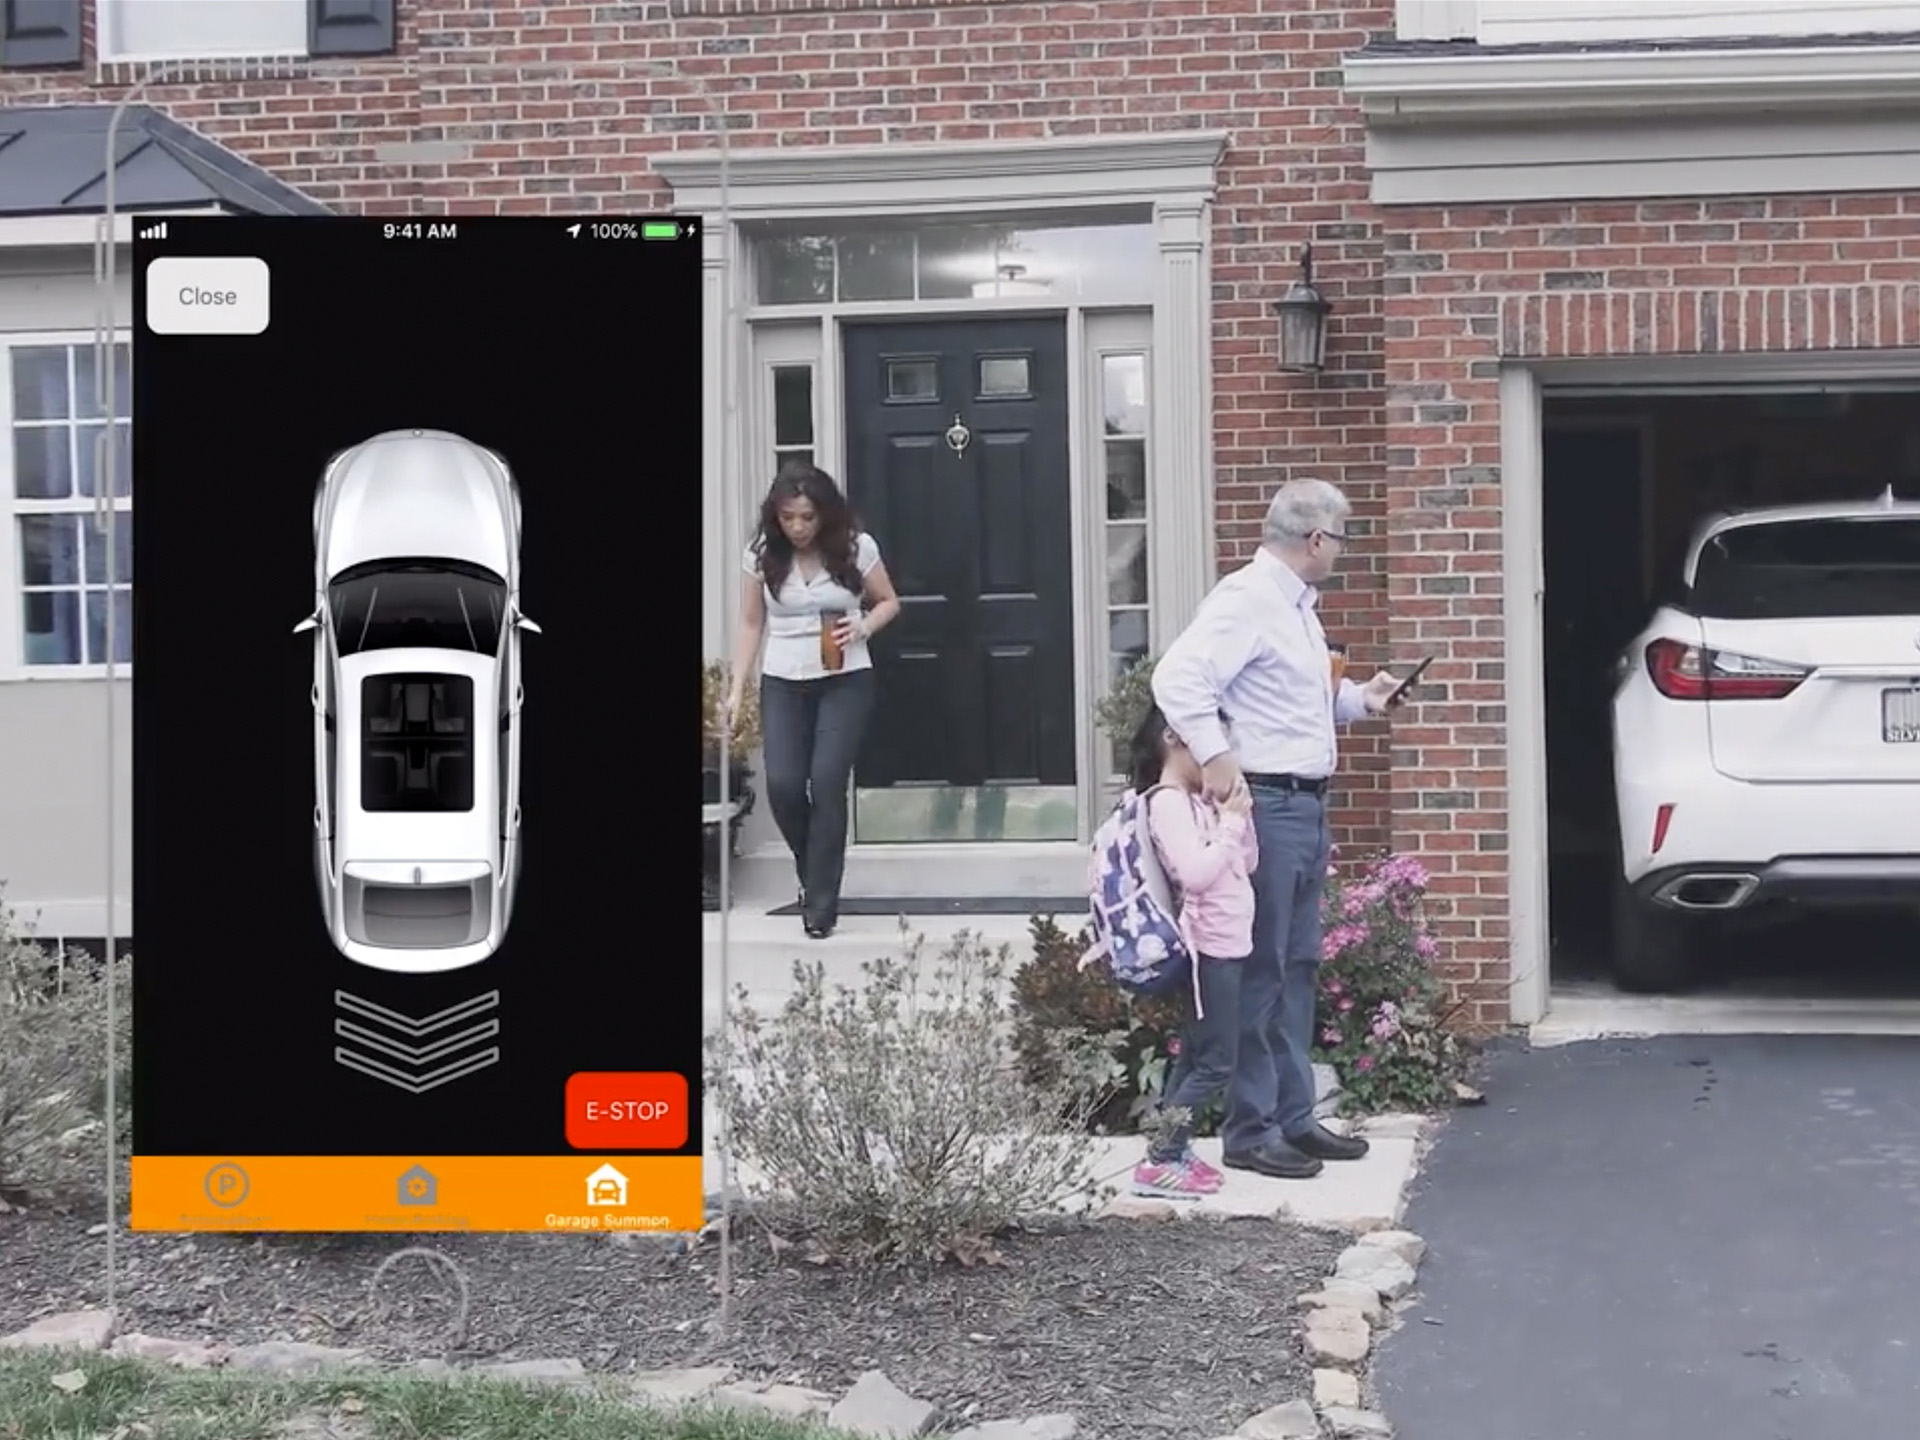 With STEER's autonomous park and summon features, homeowners no longer have to worry about having enough space to get in and out of the car while inside the garage.